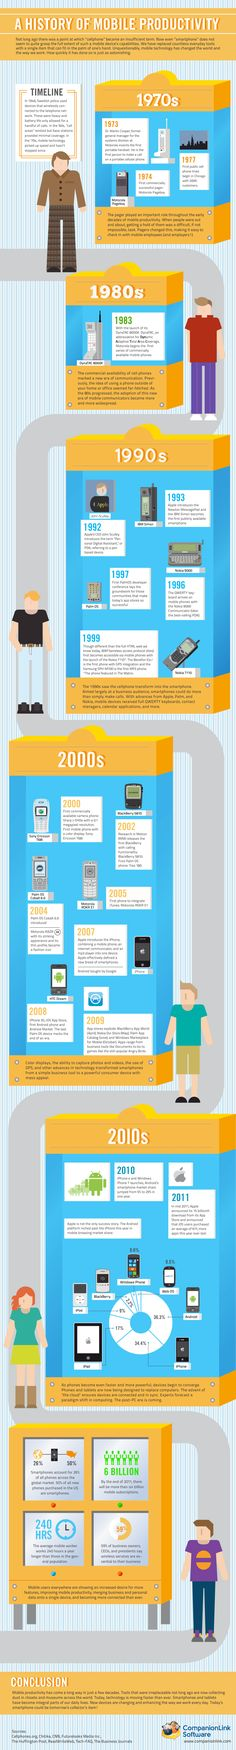 Historic Timeline Of Mobile Productivity  Productivity, we call it a productivity boost to have a smartphone just so ... But at the same time, what is stopping us from taking a 15 minute breather here and there to actually play or interact on the Internet, which in turn takes our focus off of work? Has the smartphone enabled you to be more productive in your work or has it slowed you down because of the many distractions it presents?